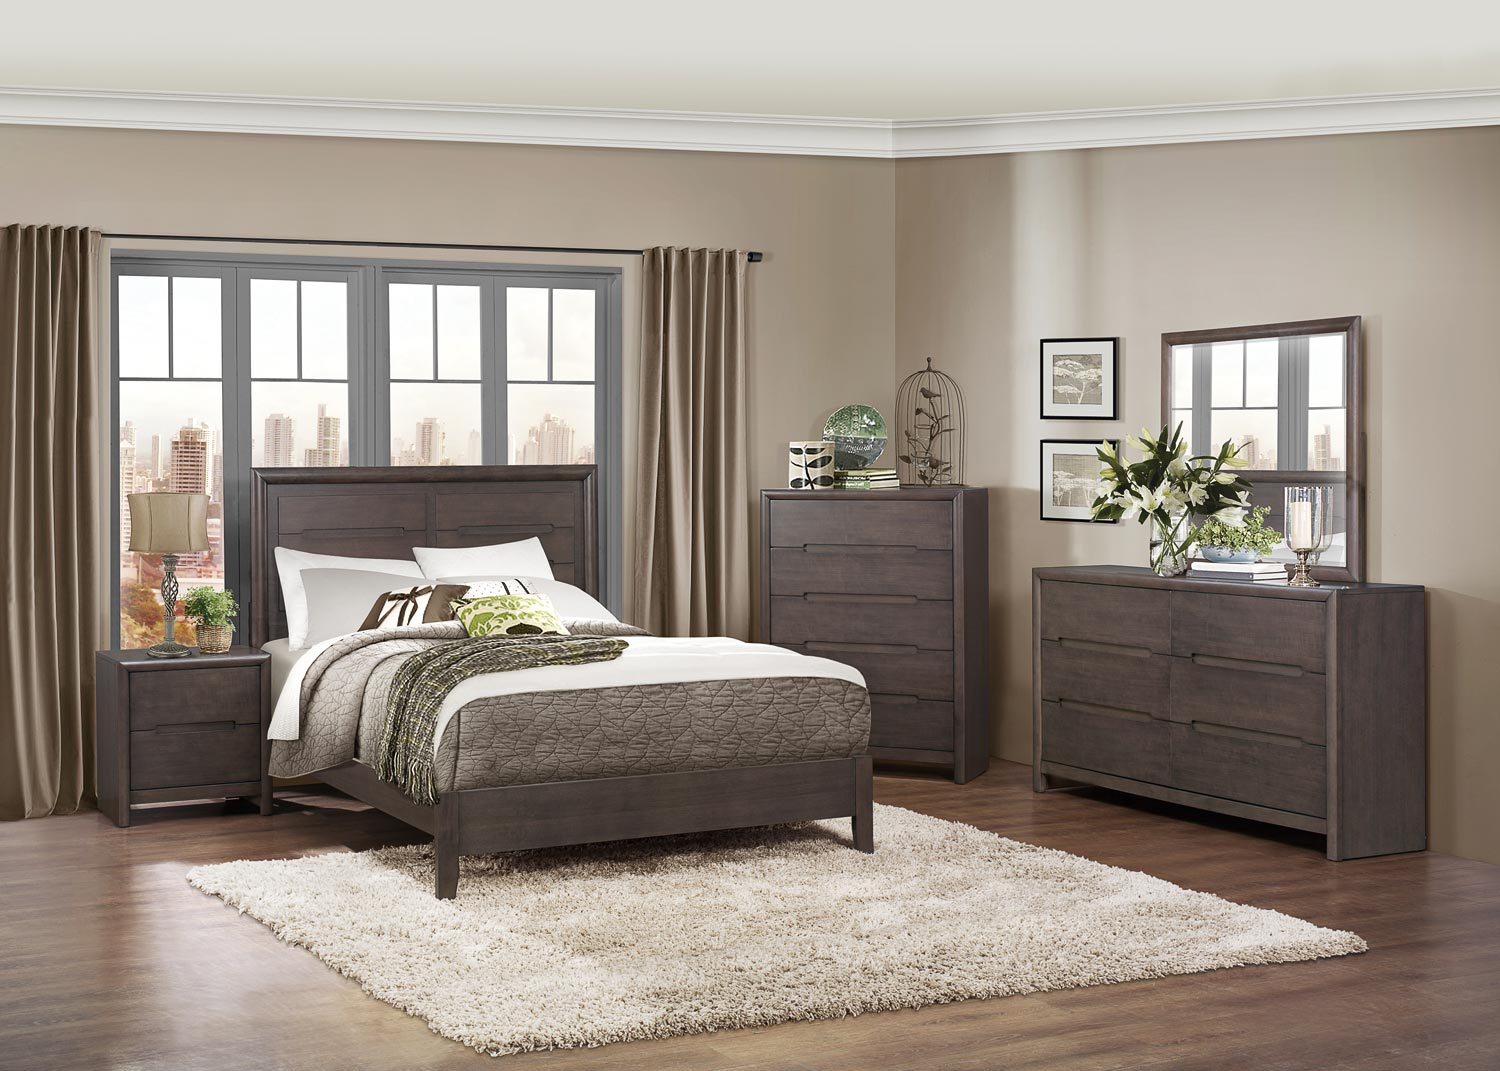 Lavinia Queen 5pc Bedroom Group Dallas TX